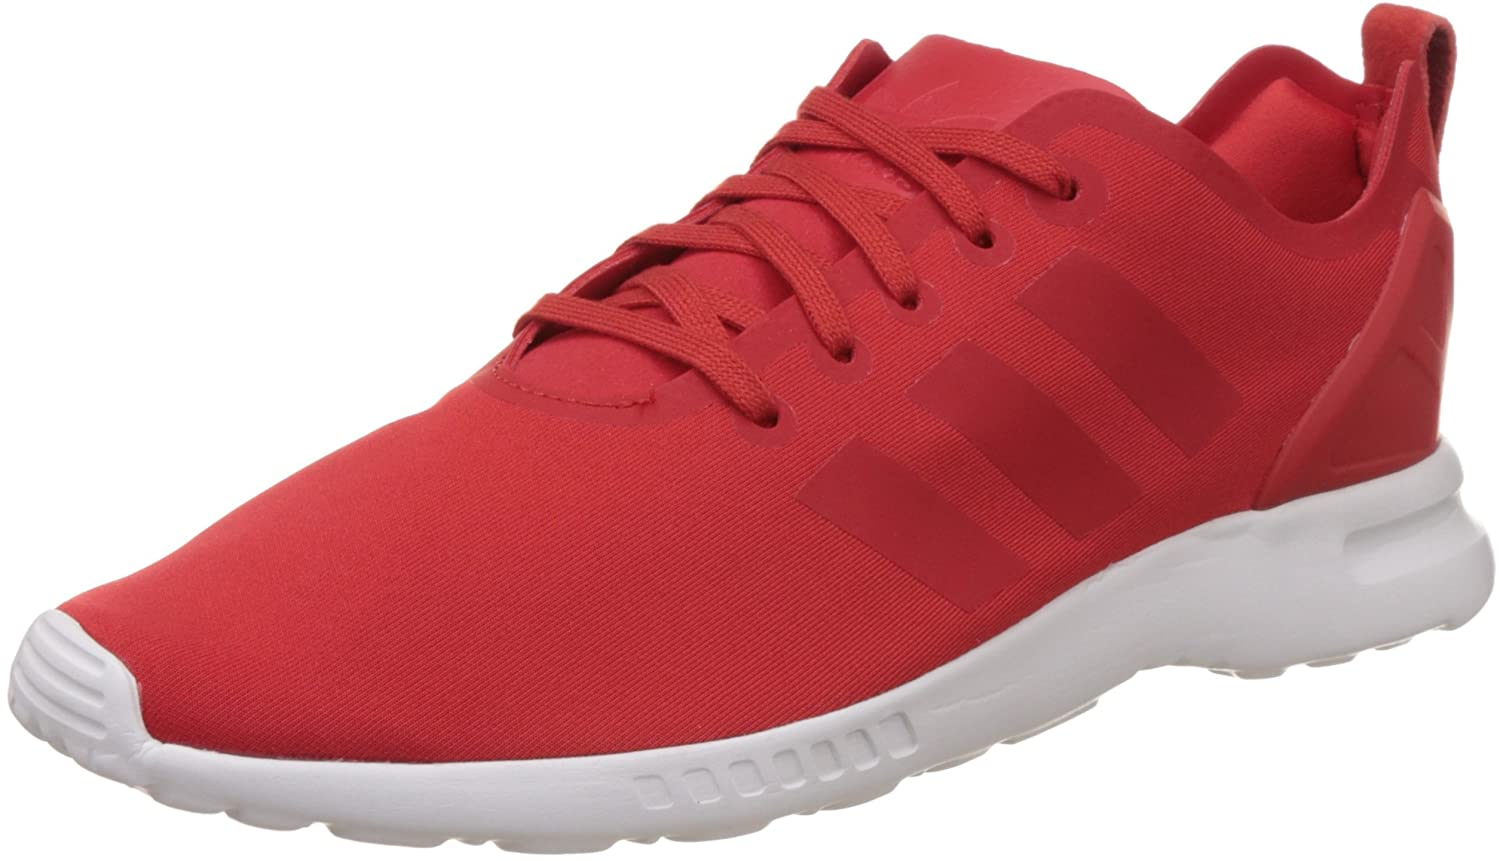 san francisco 7471b 04094 adidas Zx Flux Smooth, Women's Low-Top Sneakers